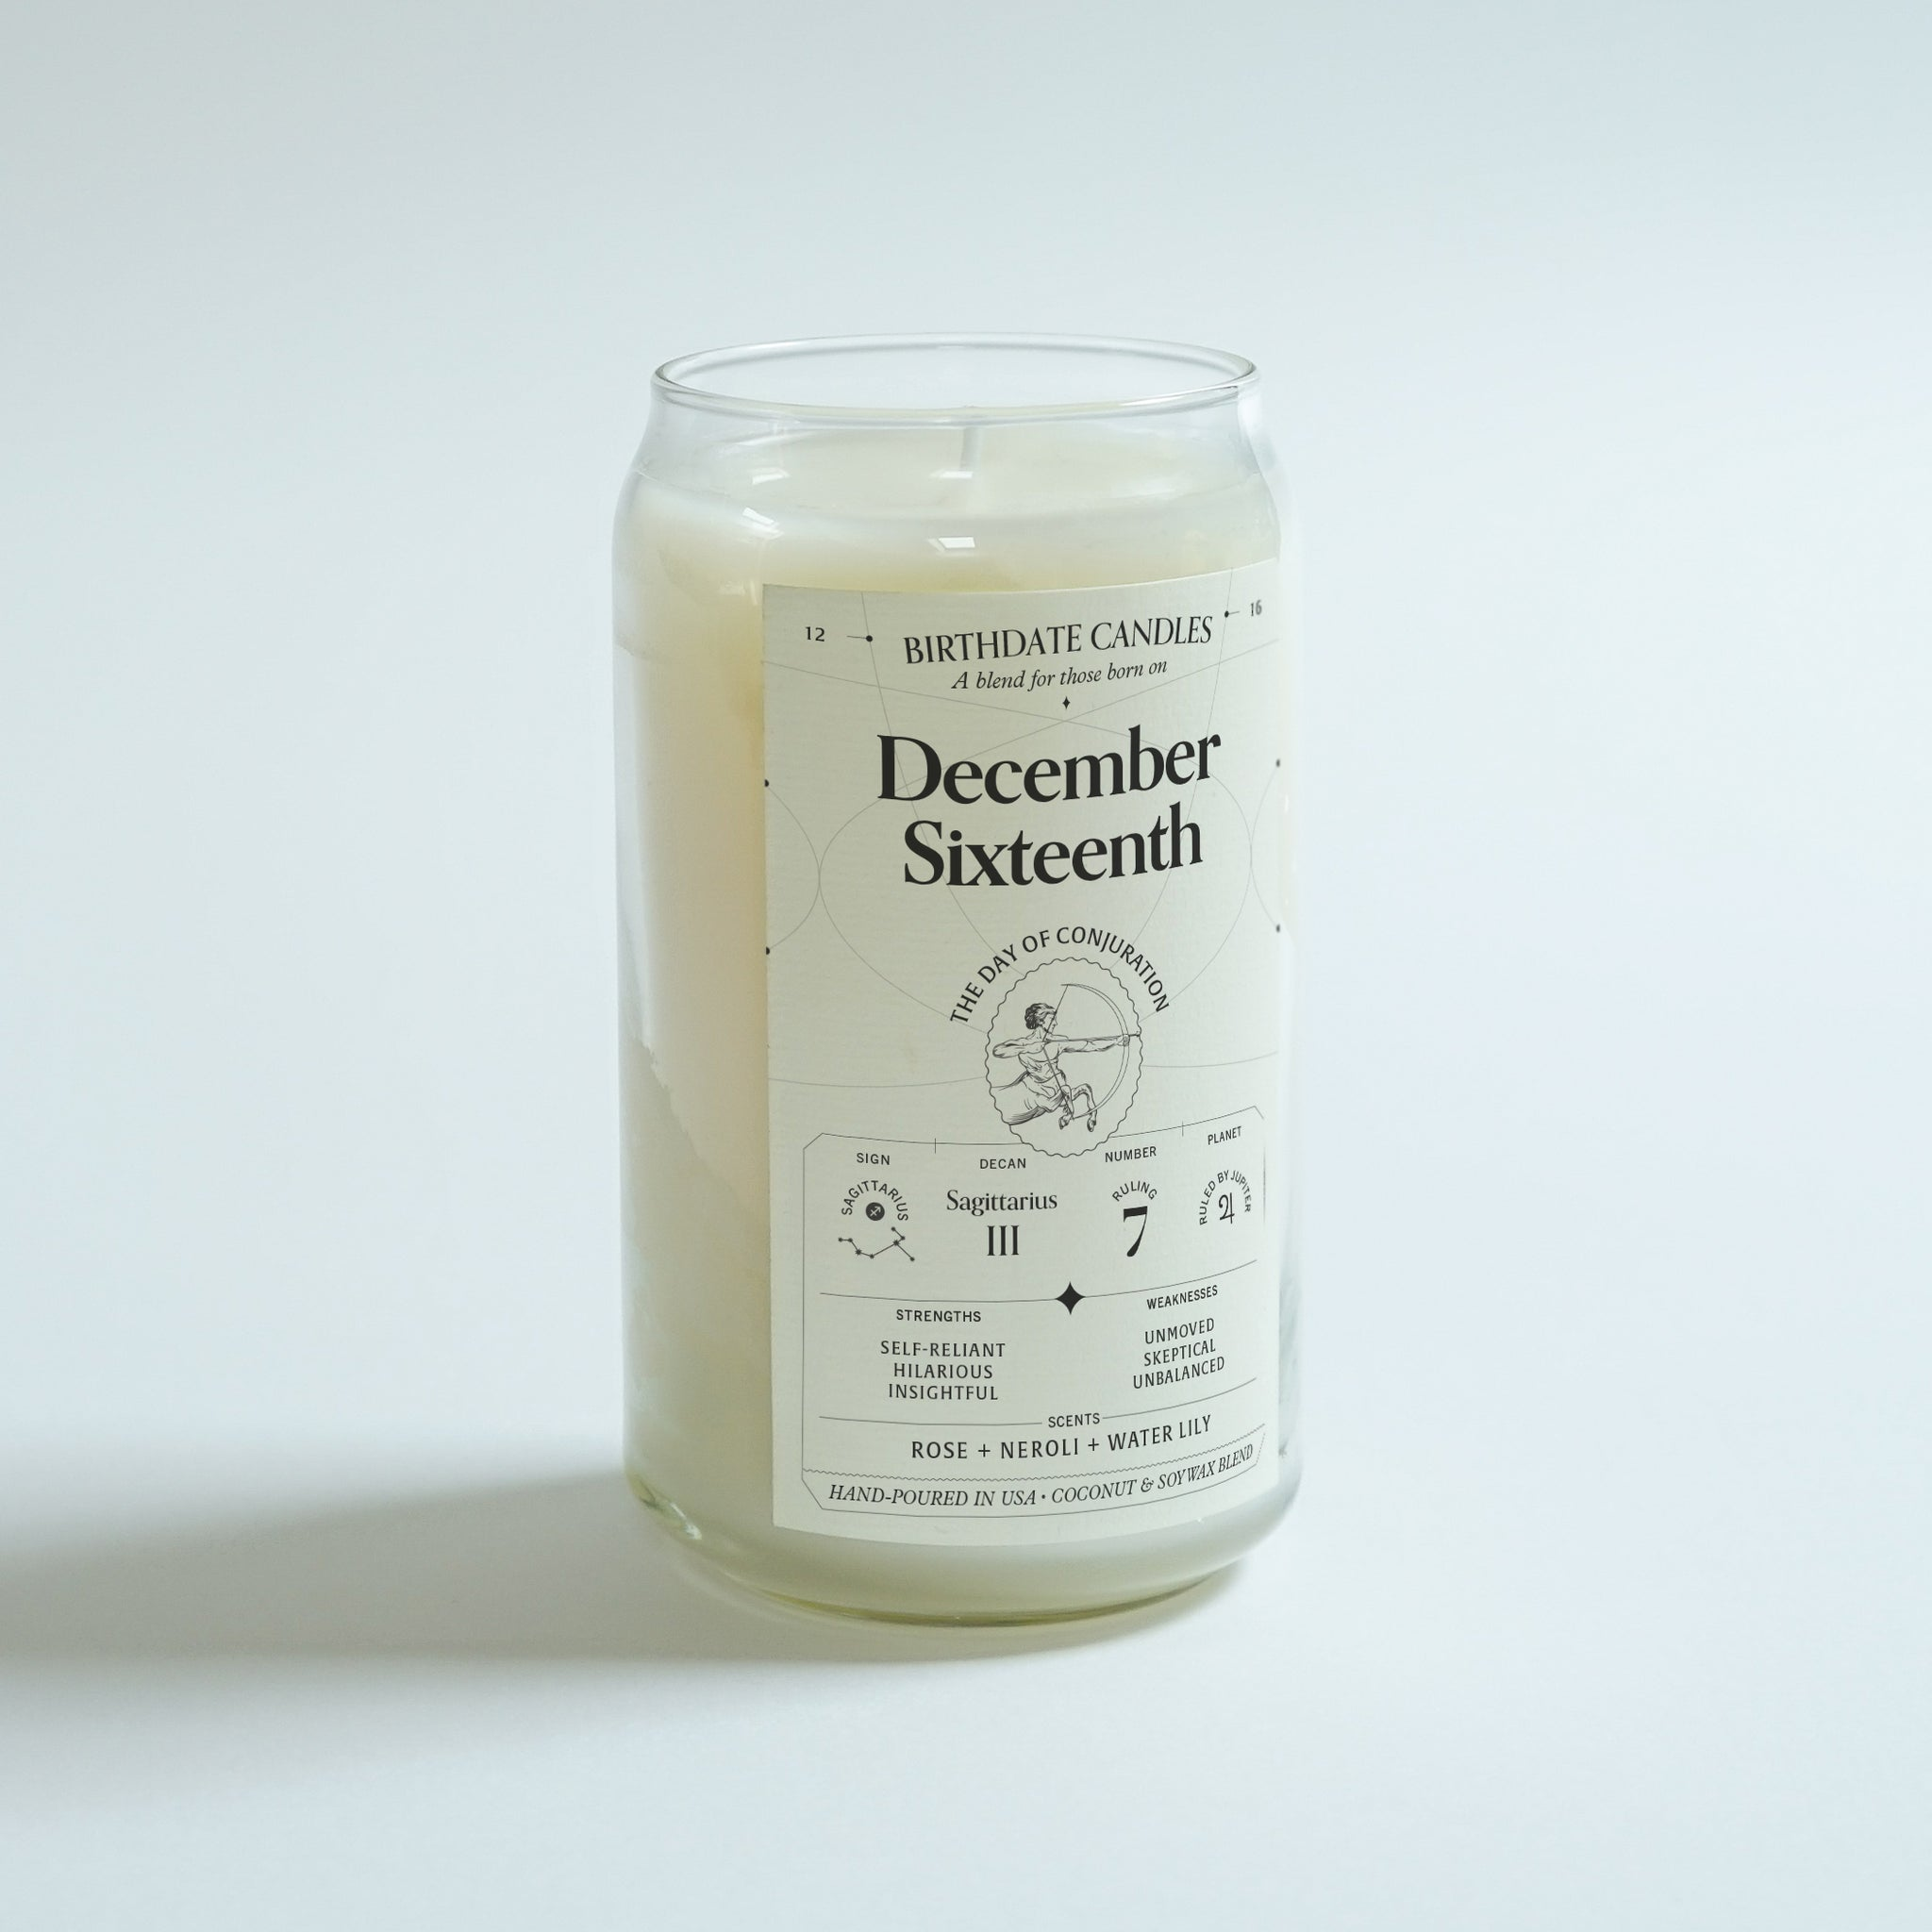 The December Sixteenth Birthday Candle